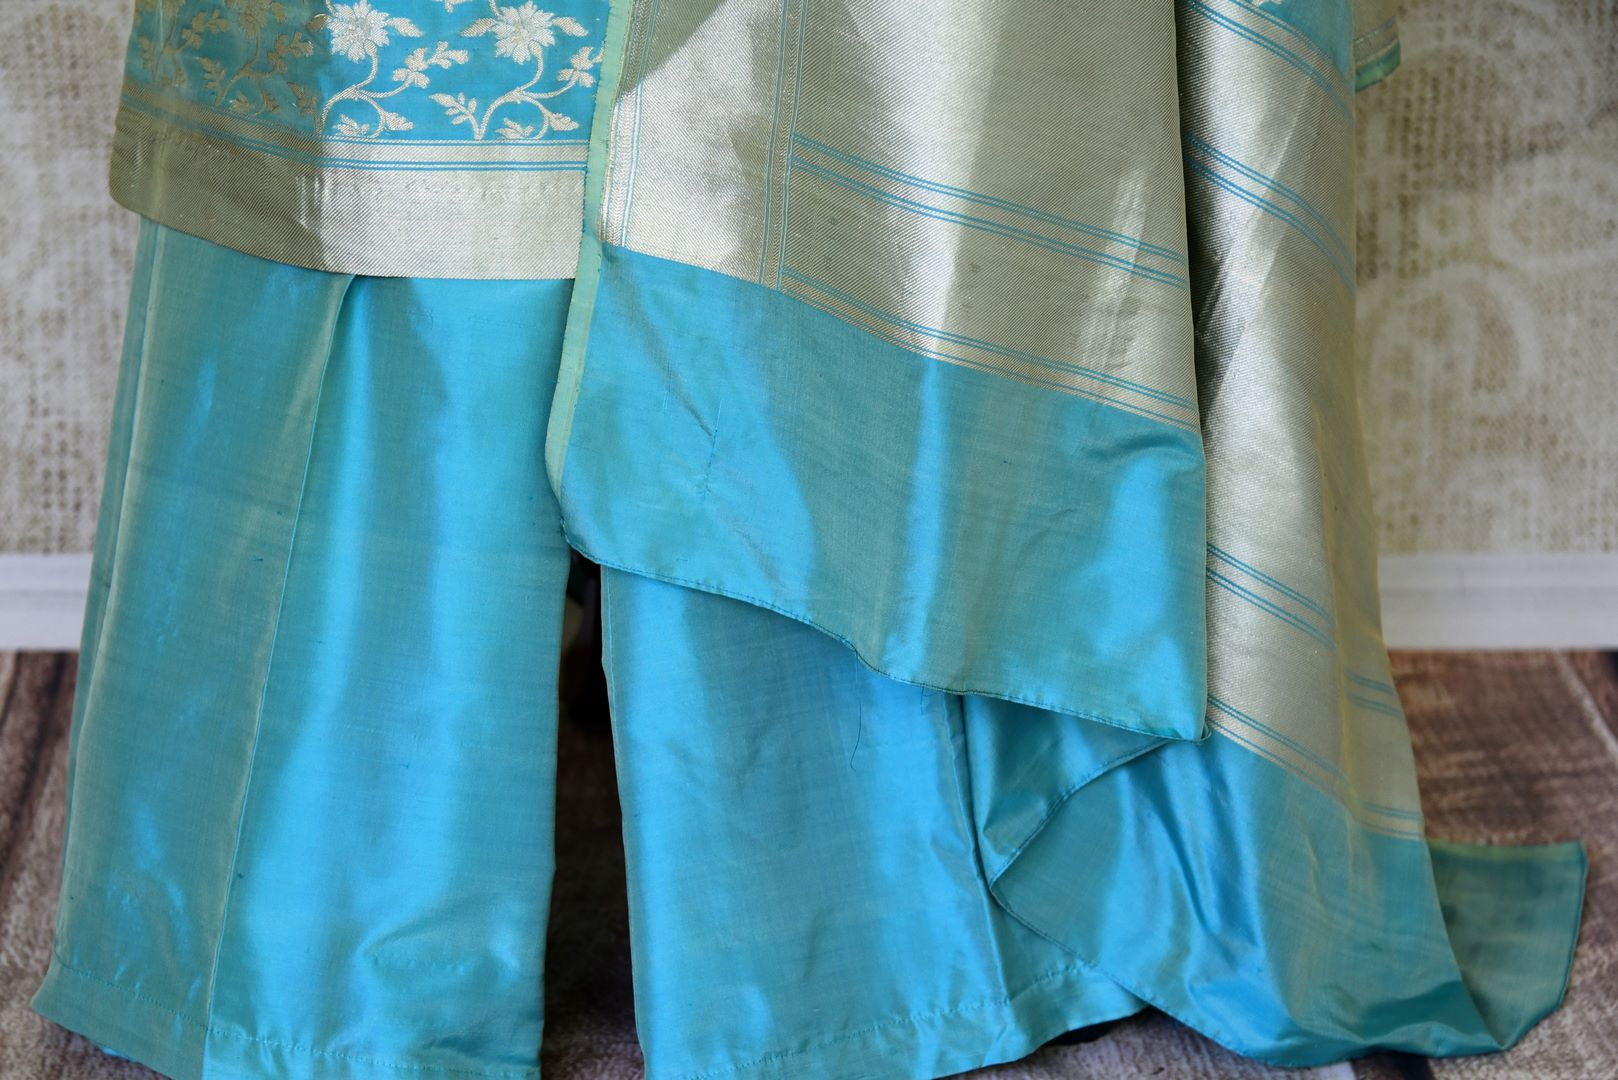 Buy light blue pure handloom Banarasi suit online in USA with dupatta. If you are fond of Indian fashion then you must visit Pure Elegance Indian clothing store in USA. We have a splendid collection of Indian designer dresses, Indowestern dresses and clothing here for you on our shelves. -palazzo